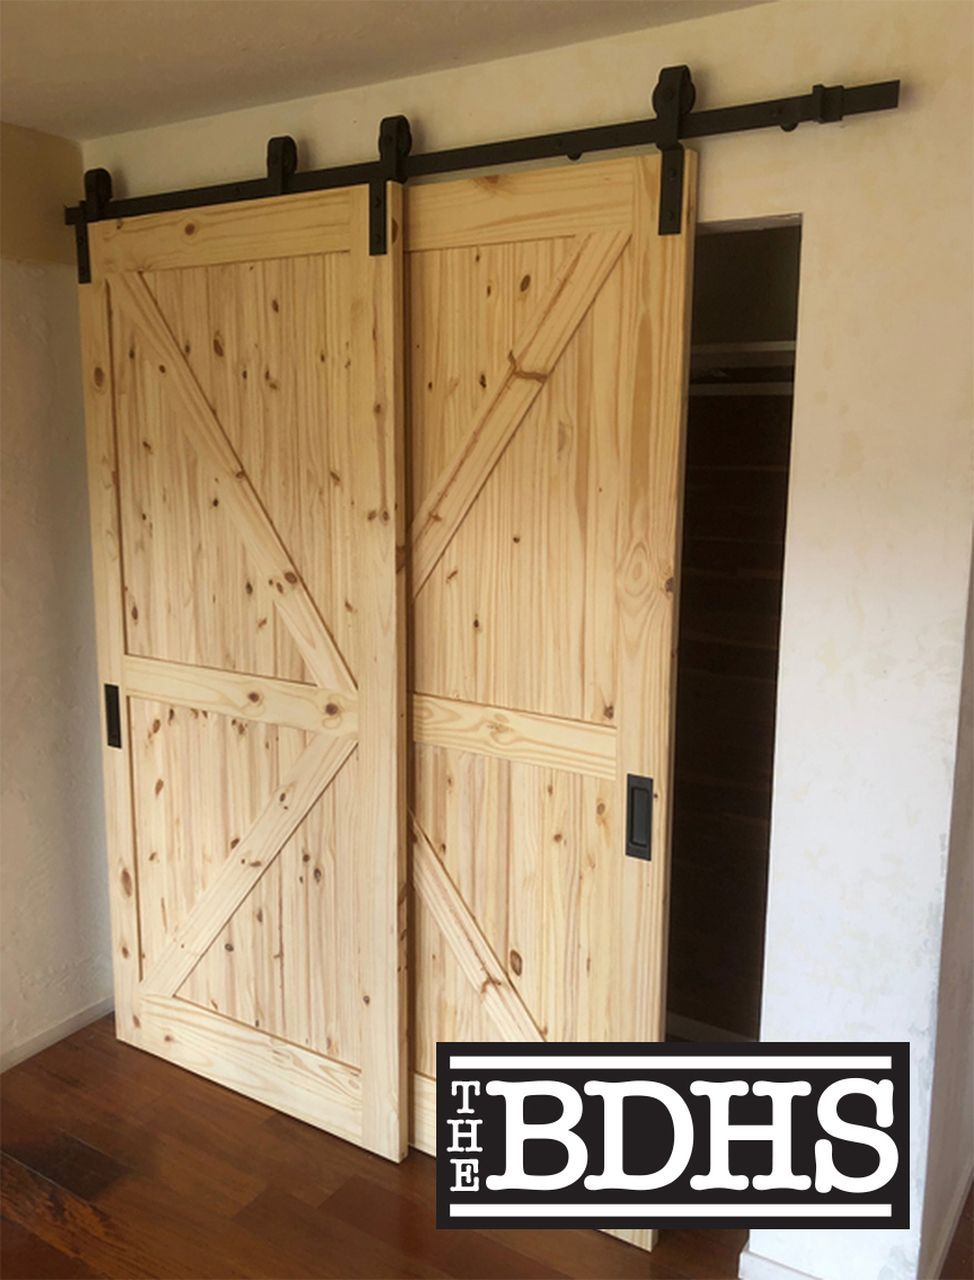 Awesome Sliding Barn Door Ideas 11 In 2020 Bypass Barn Door Hardware Bypass Barn Door Barn Door Kit